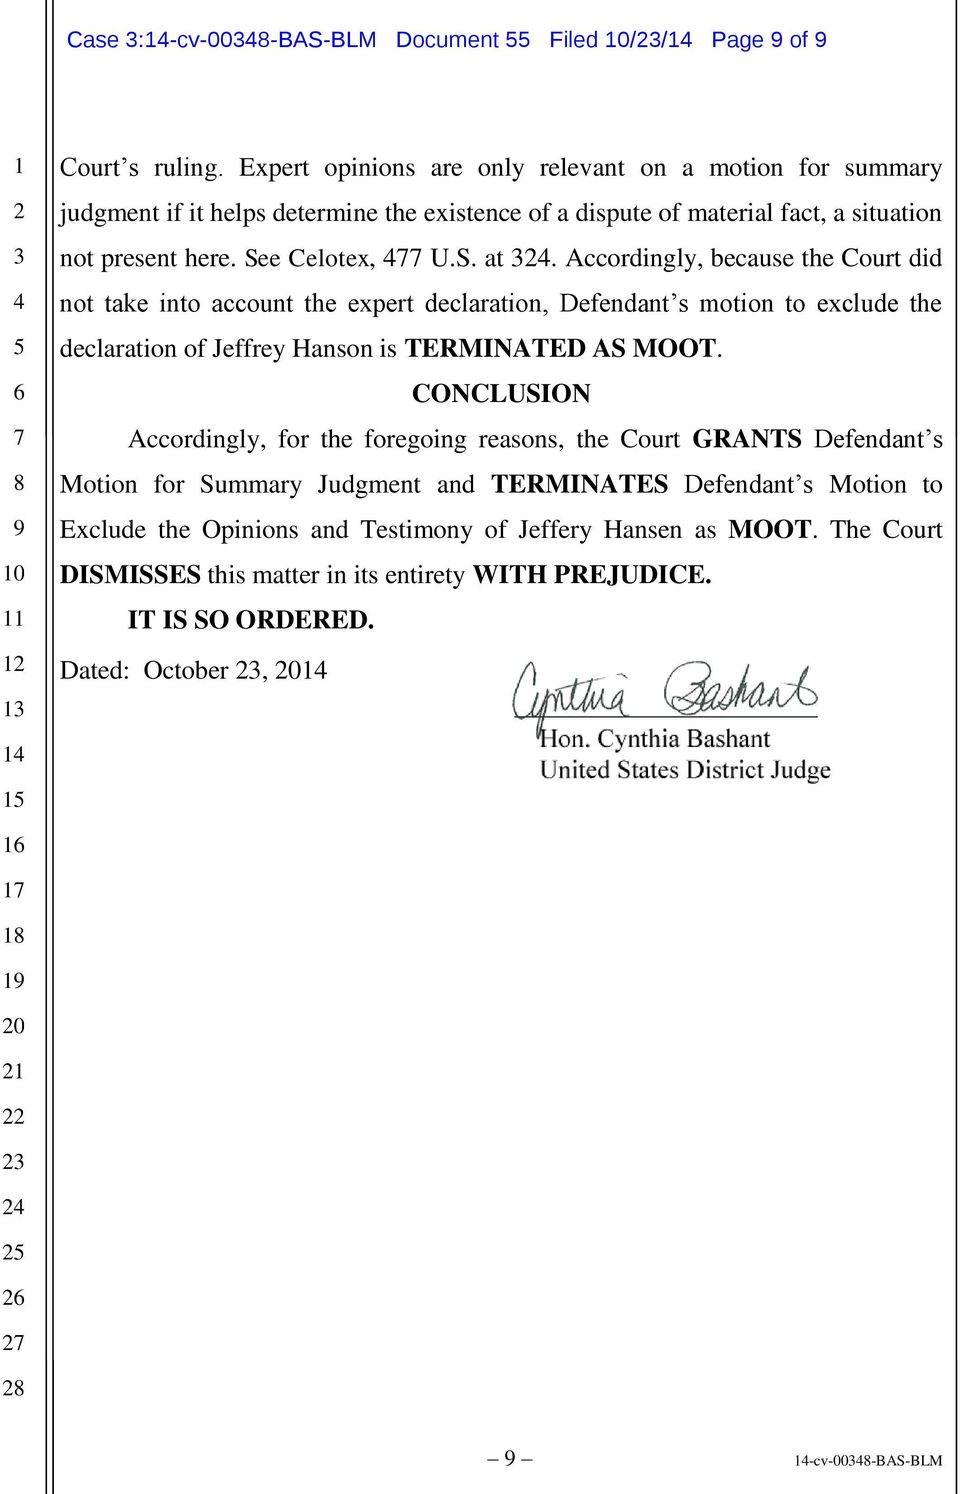 Accordingly, because the Court did not take into account the expert declaration, Defendant s motion to exclude the declaration of Jeffrey Hanson is TERMINATED AS MOOT.